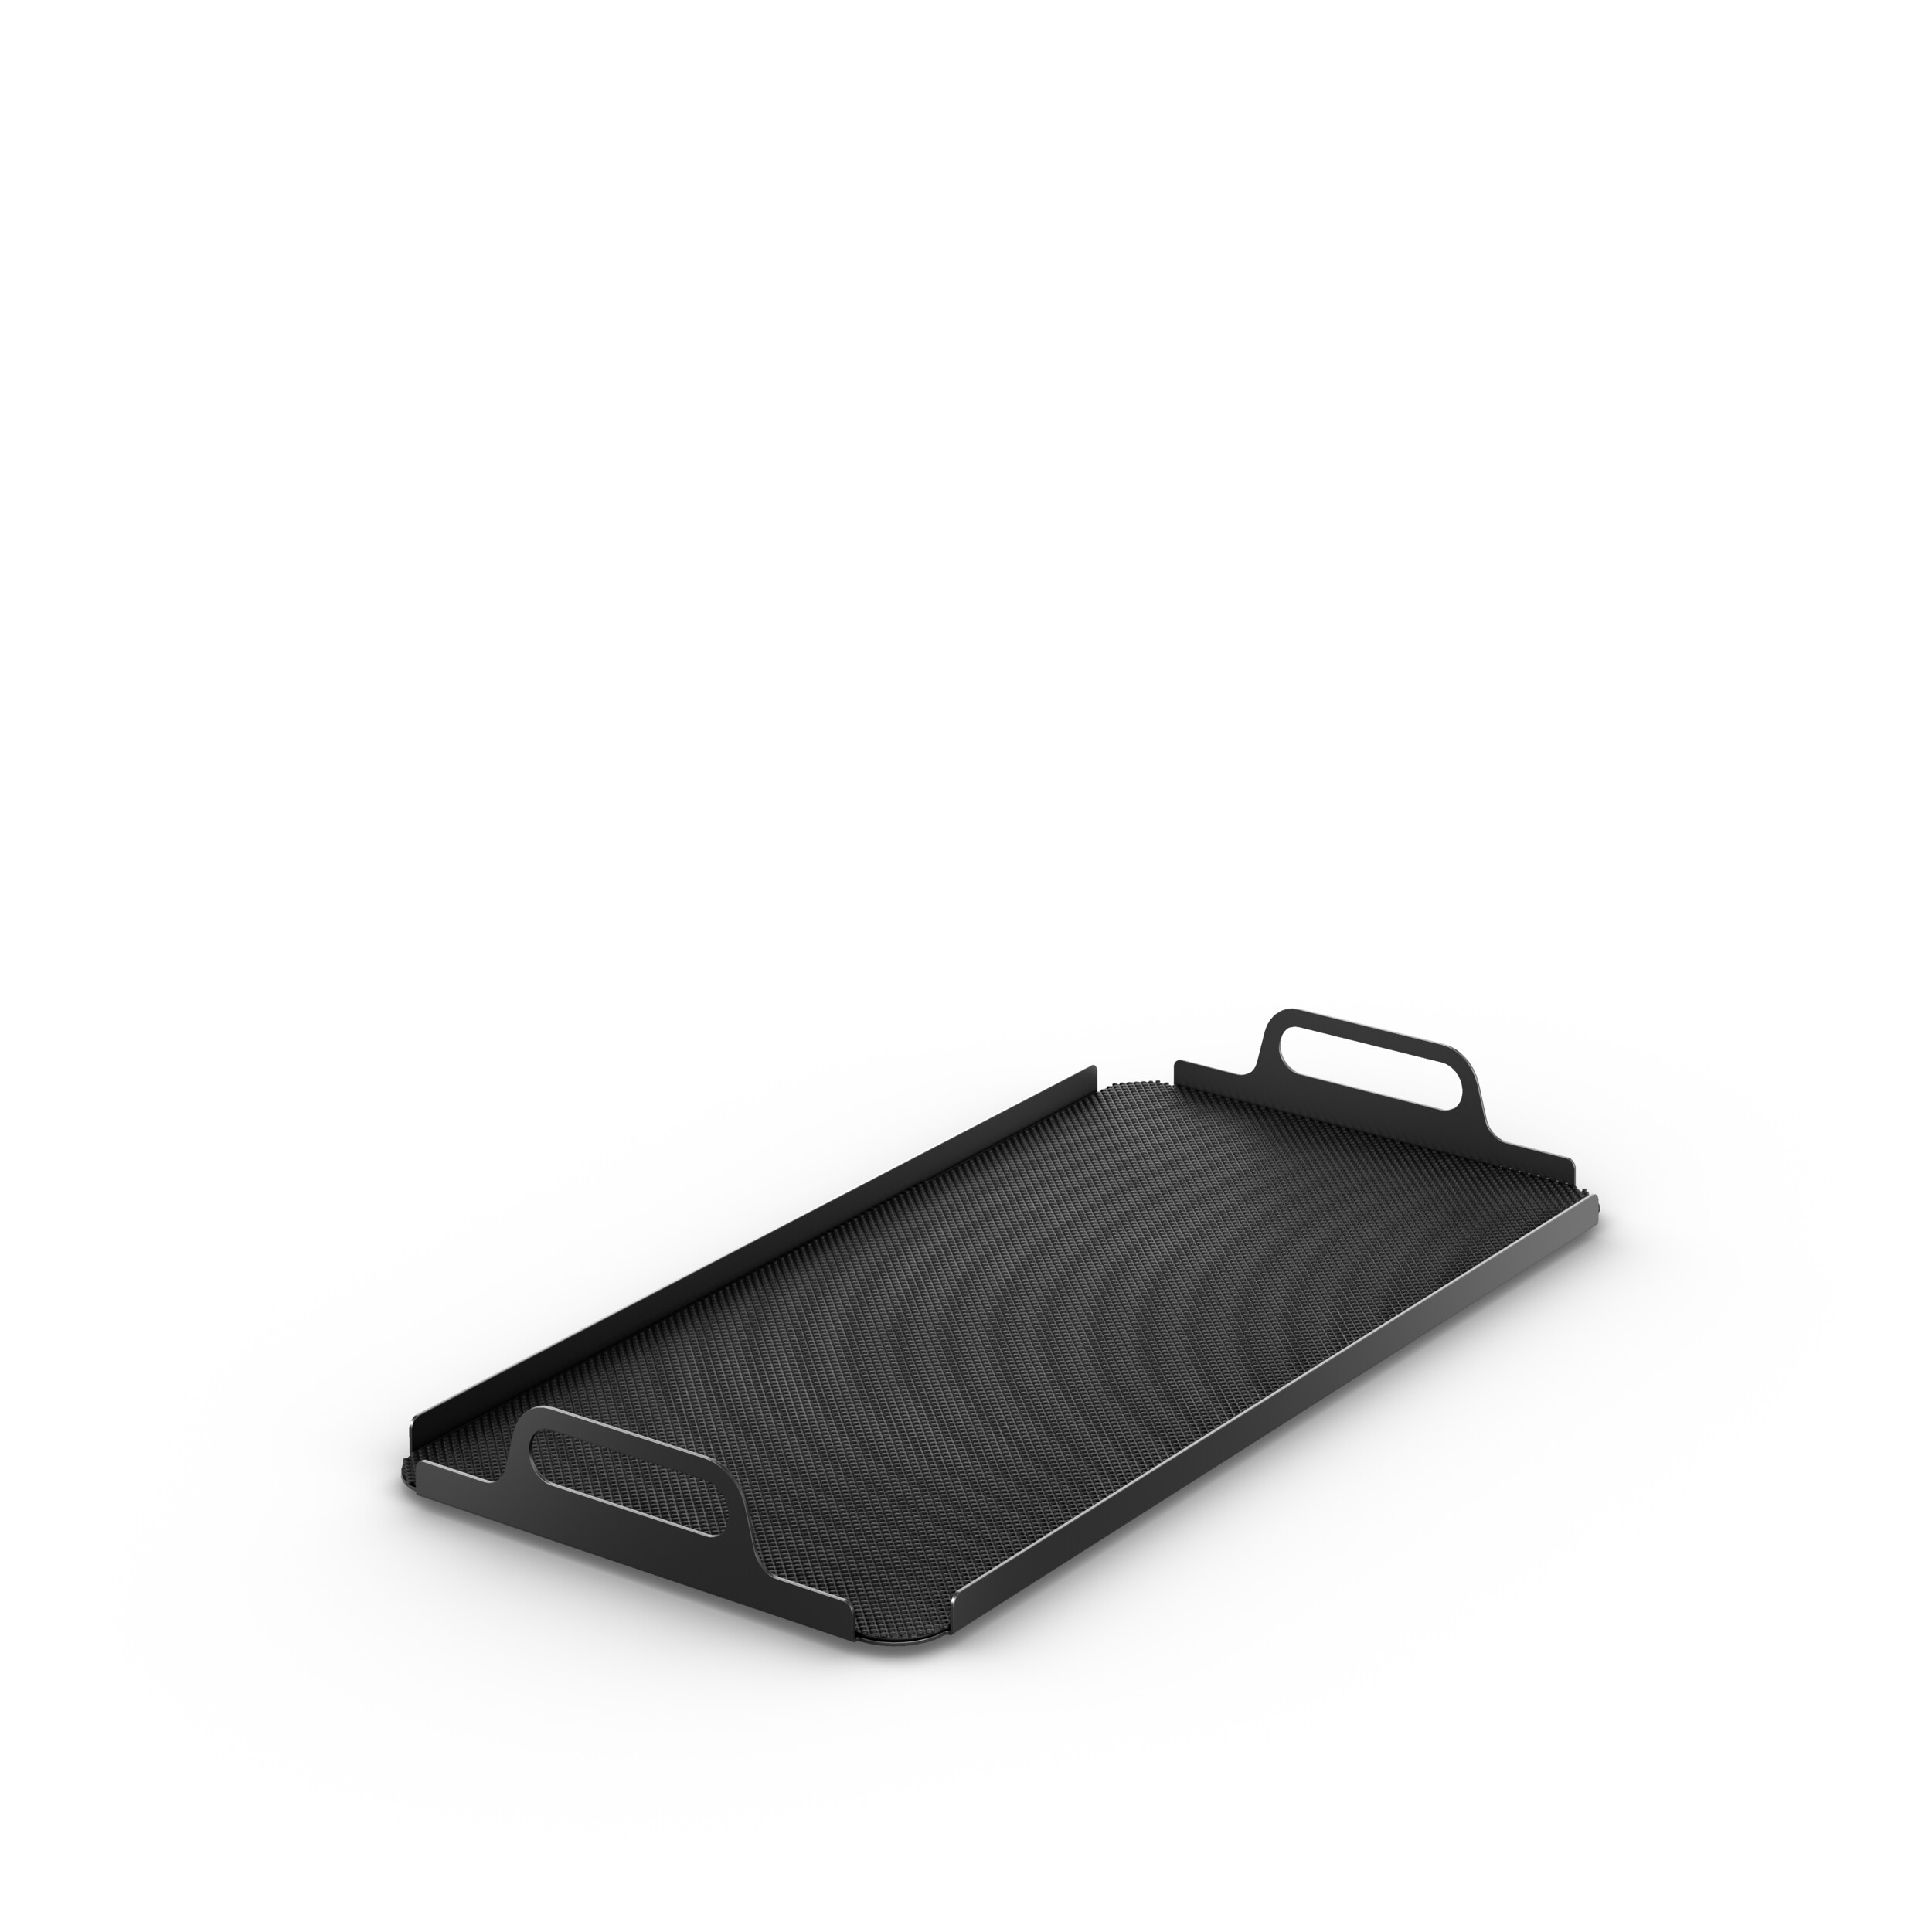 Dometic MoBar Serving tray MOBAR ST in Black color showcased by Corbeil Electro Store